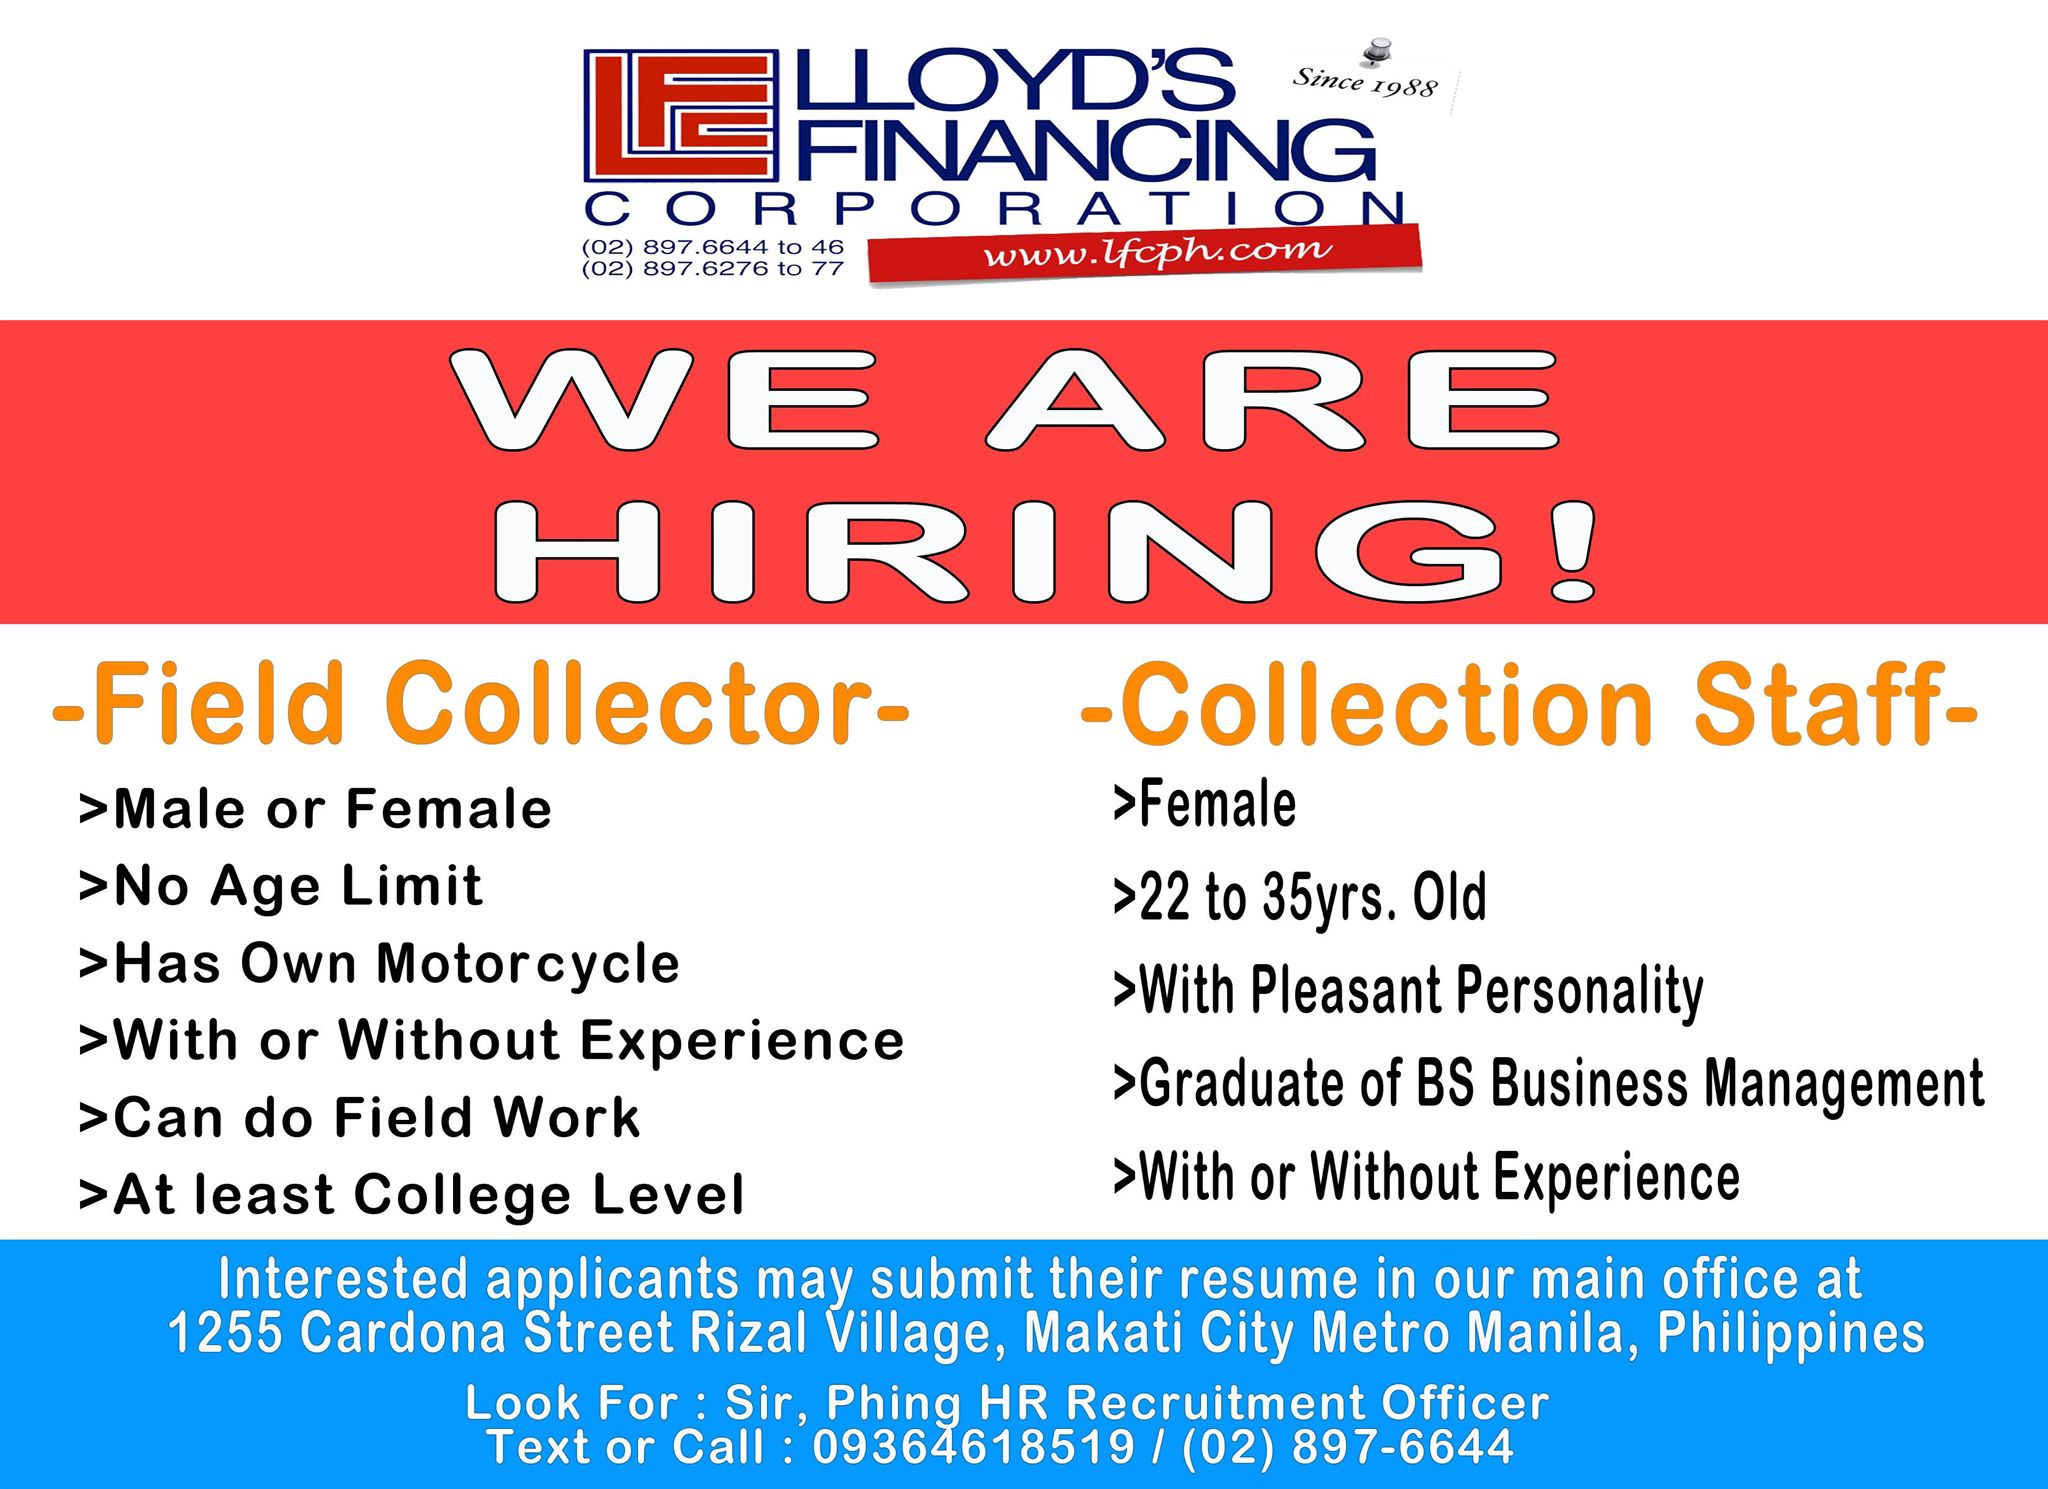 Field Collector from Lloyd's Financing